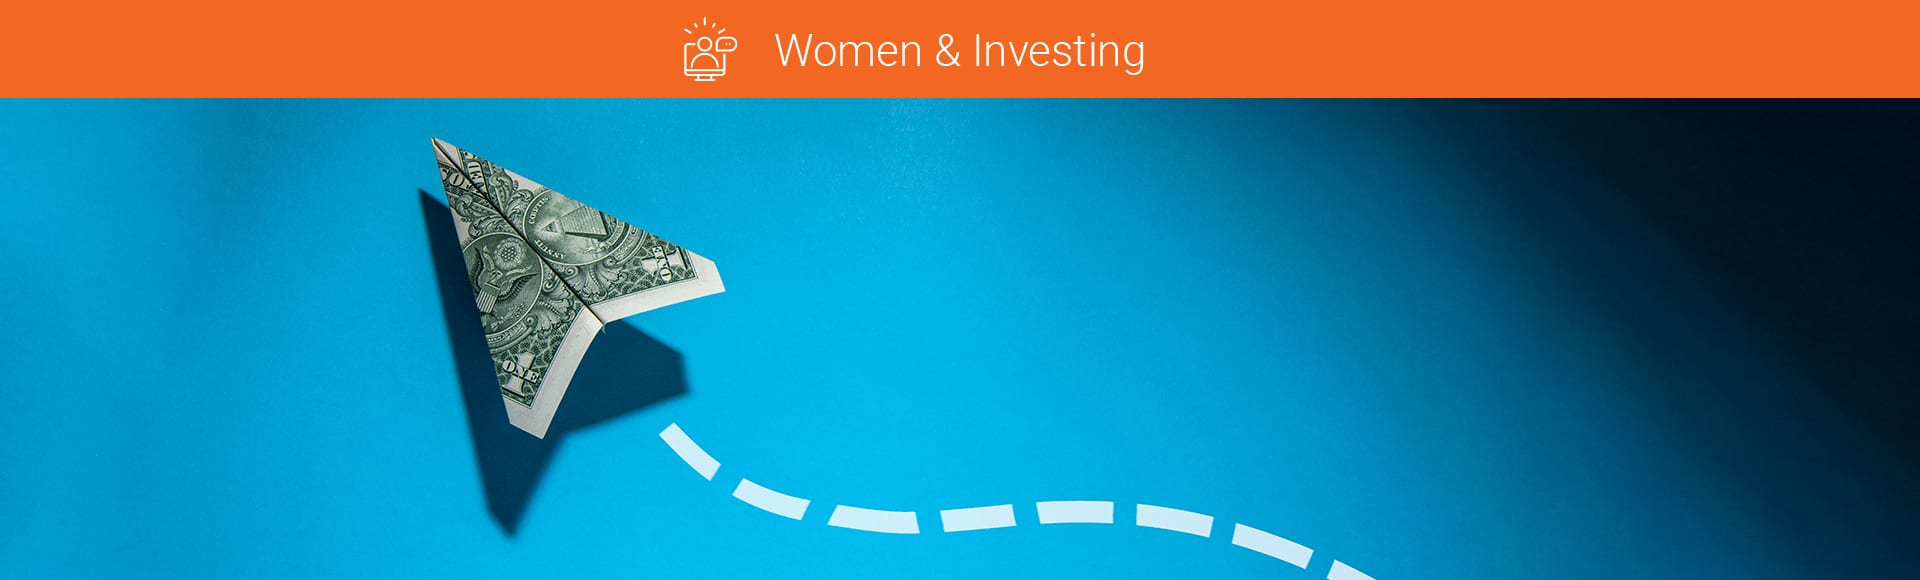 Women and investing illustration with paper airplane made out of money flying across blue background with white dashed line trail.